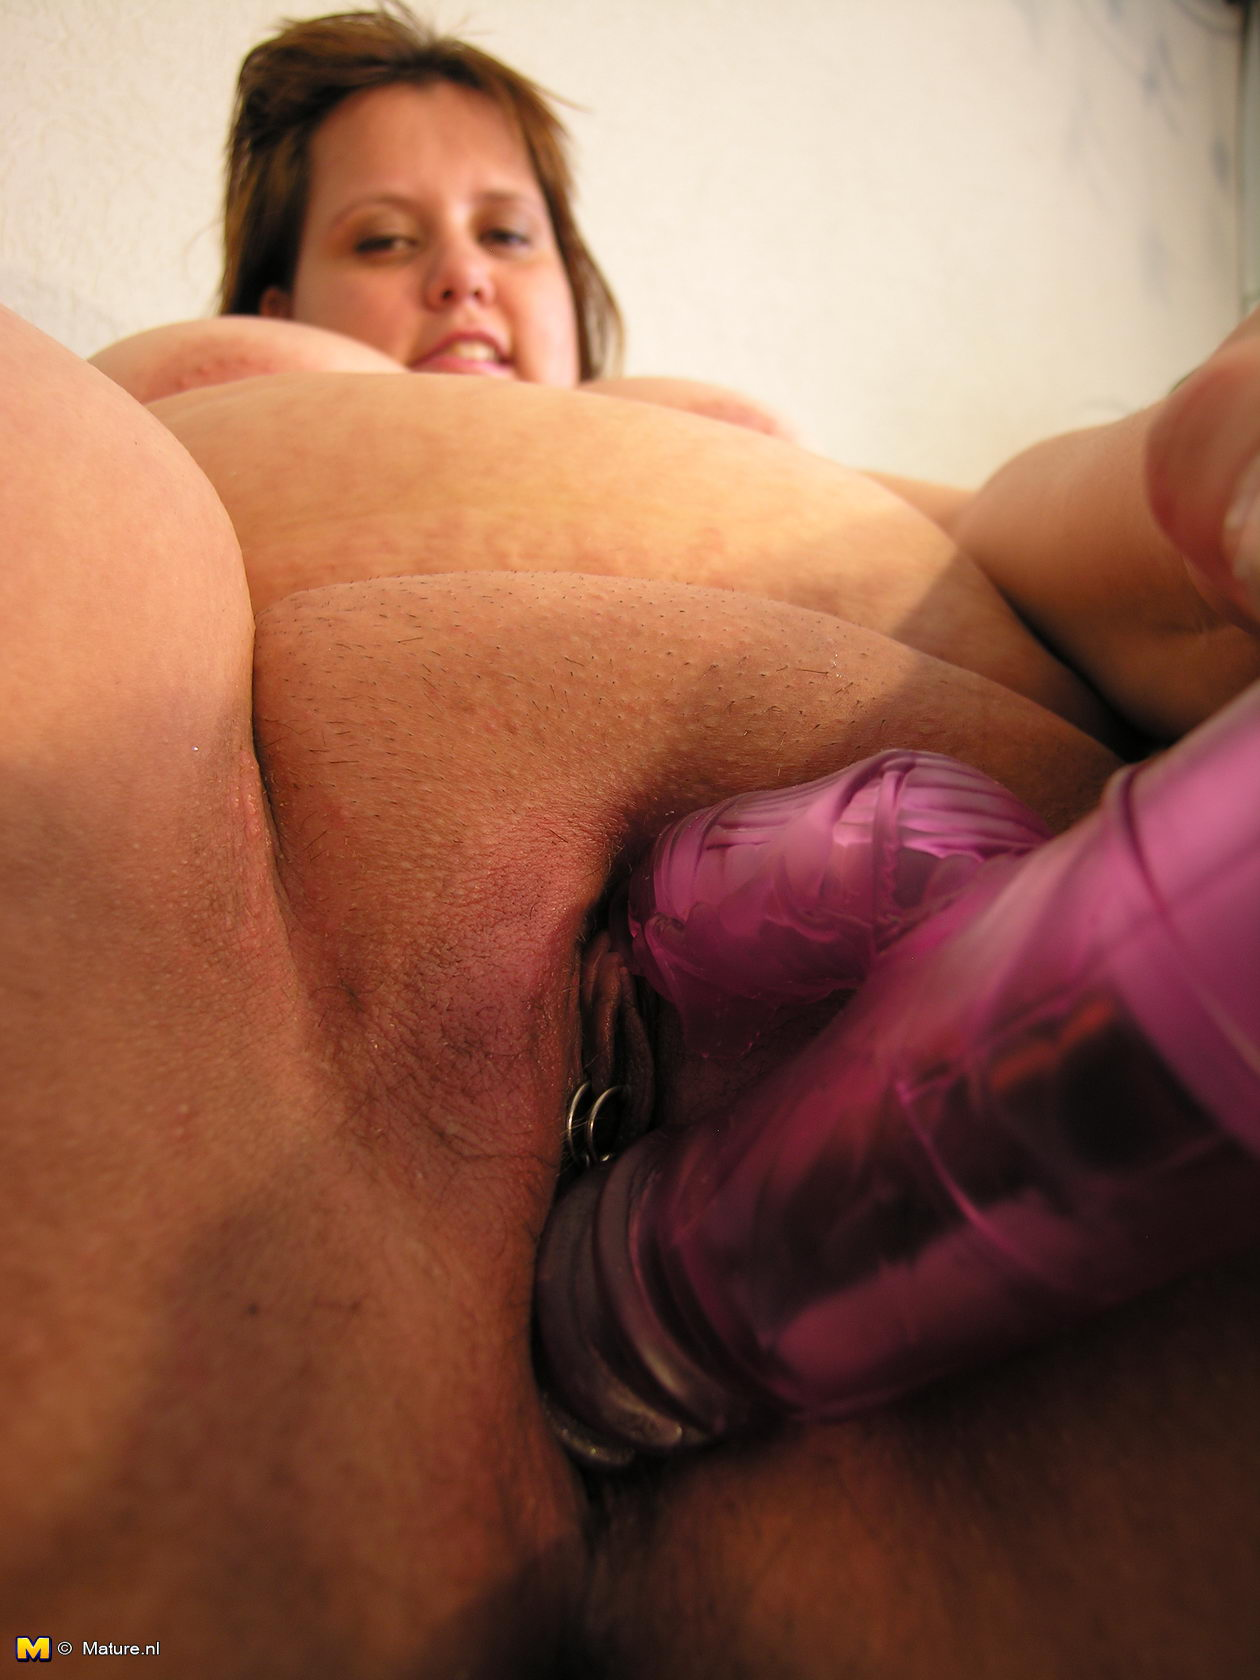 Mature woman playing with dildo before sleep